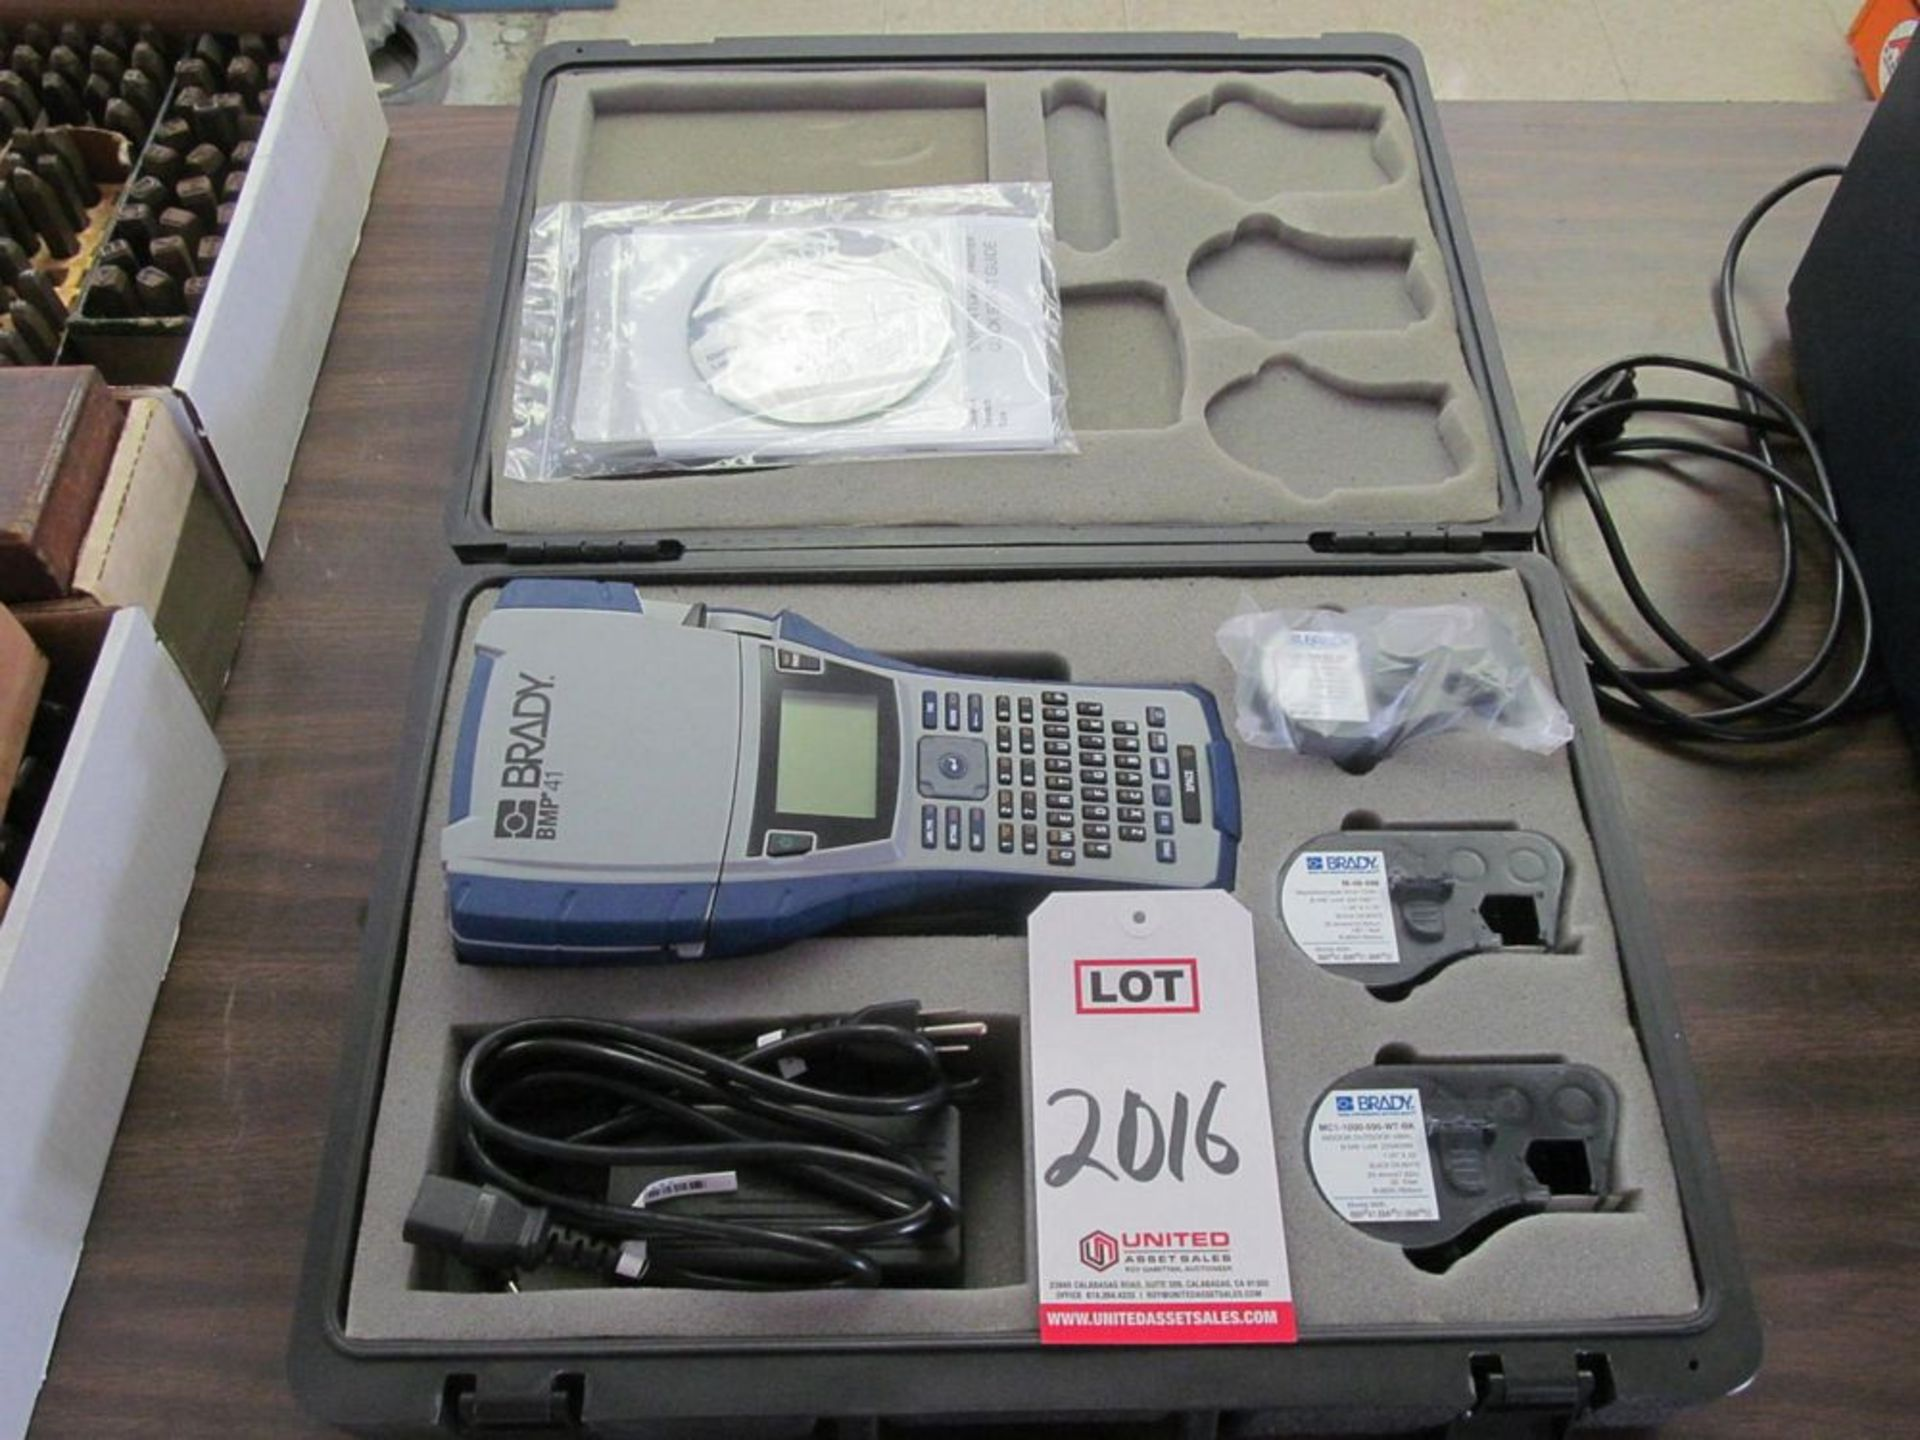 Lot 2016 - BRADY BMP41 LABELER (TECH LAB)